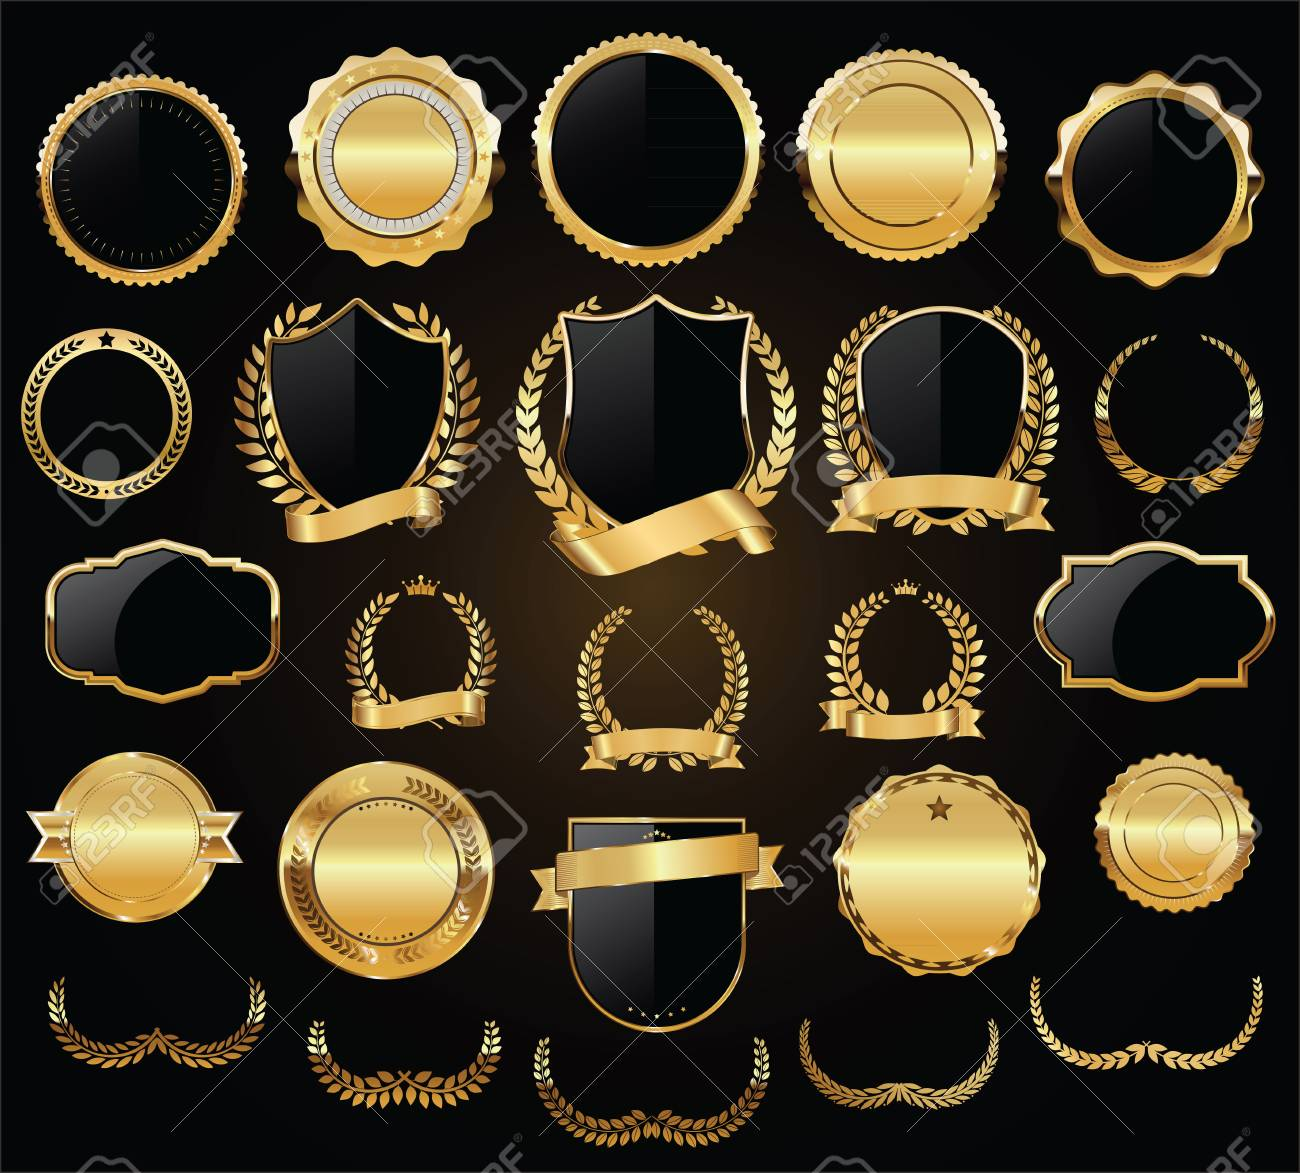 Golden shields laurel wreaths and badges vector collection - 105226024